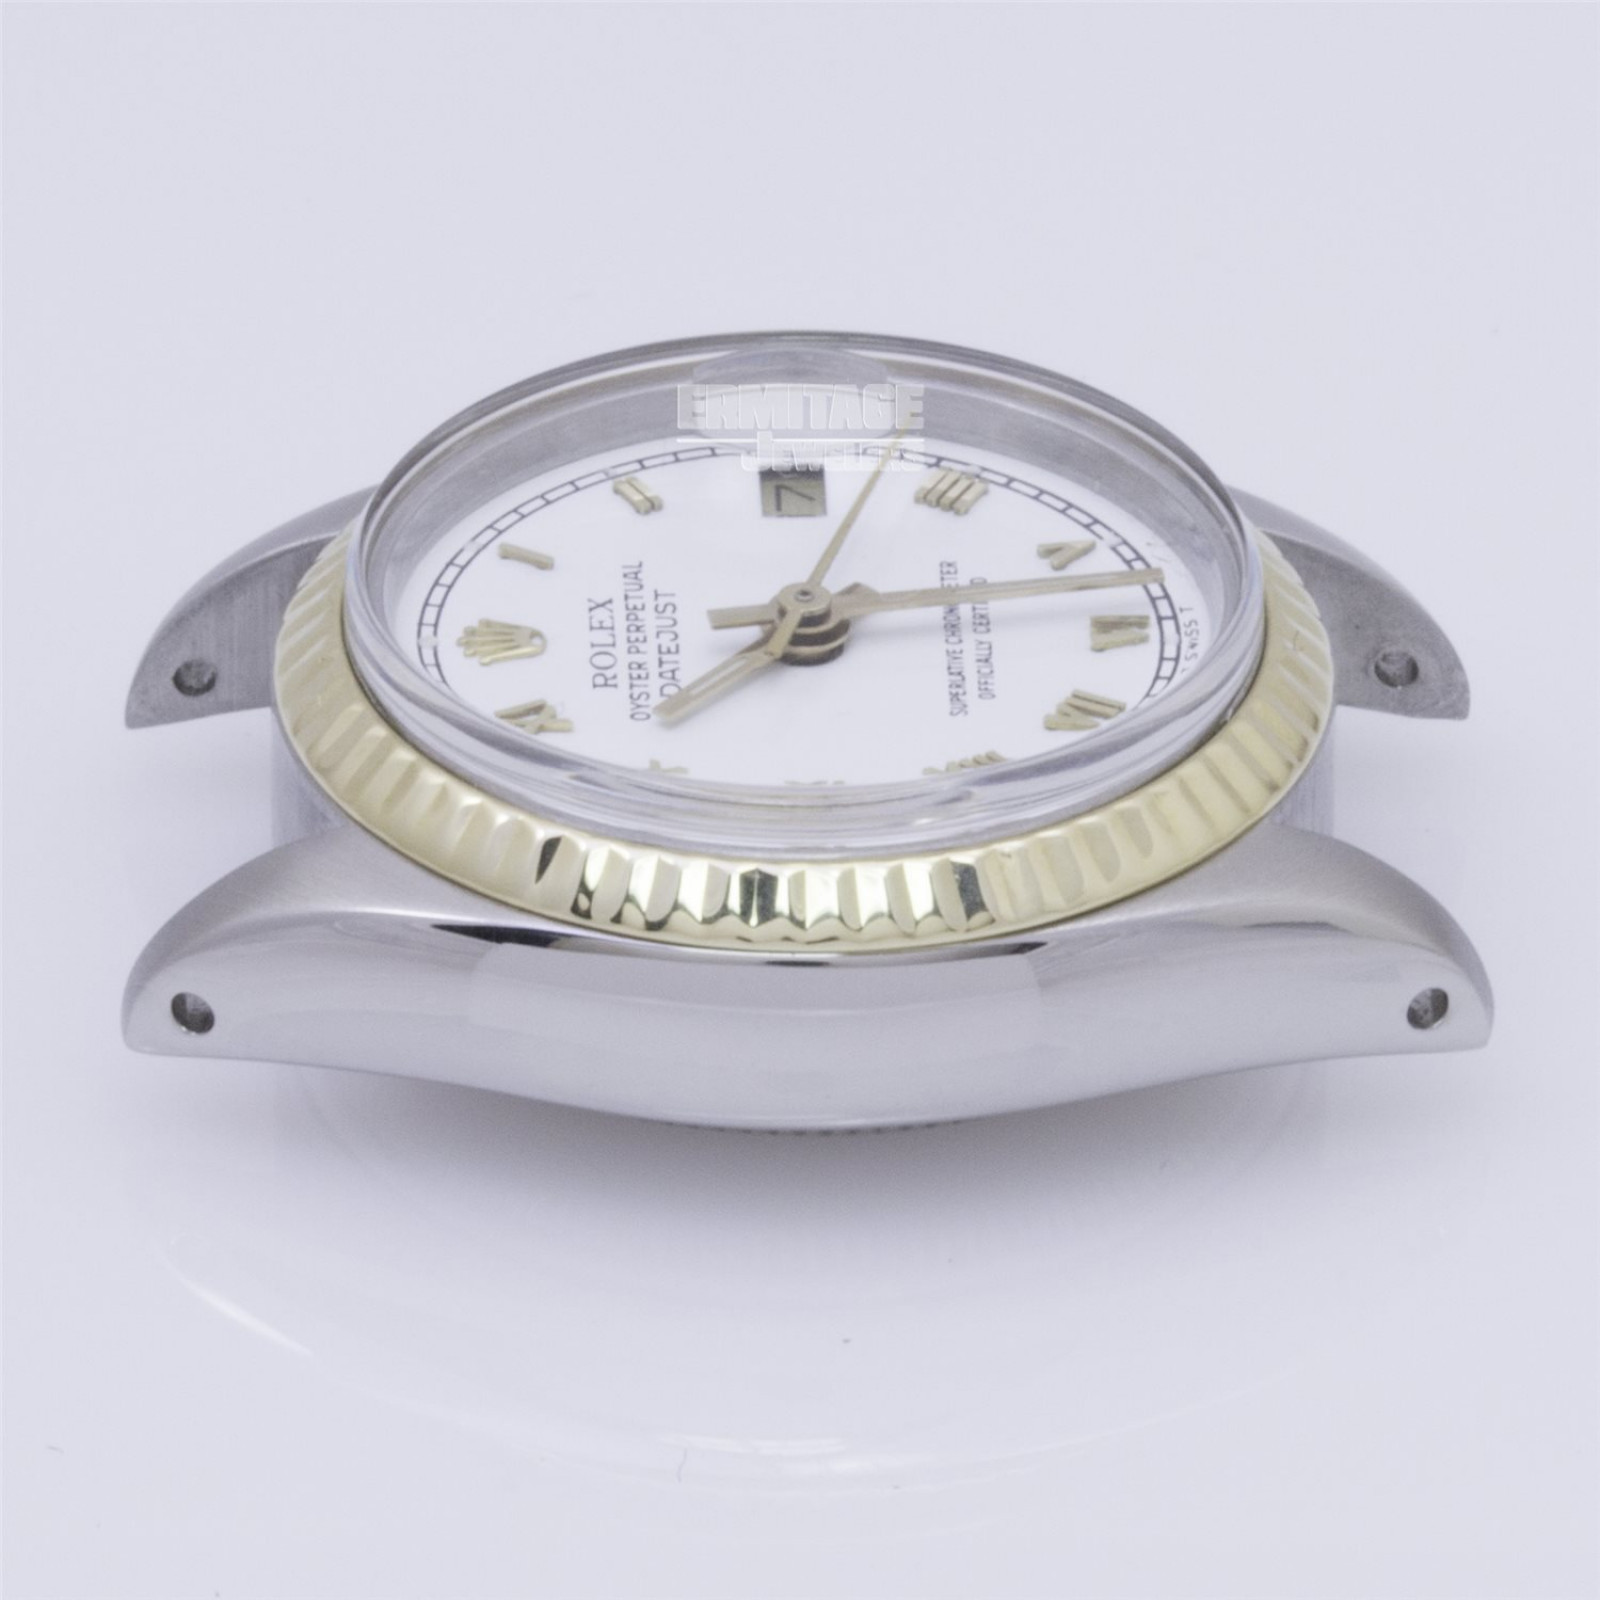 Rolex Datejust 6917 with White Dial